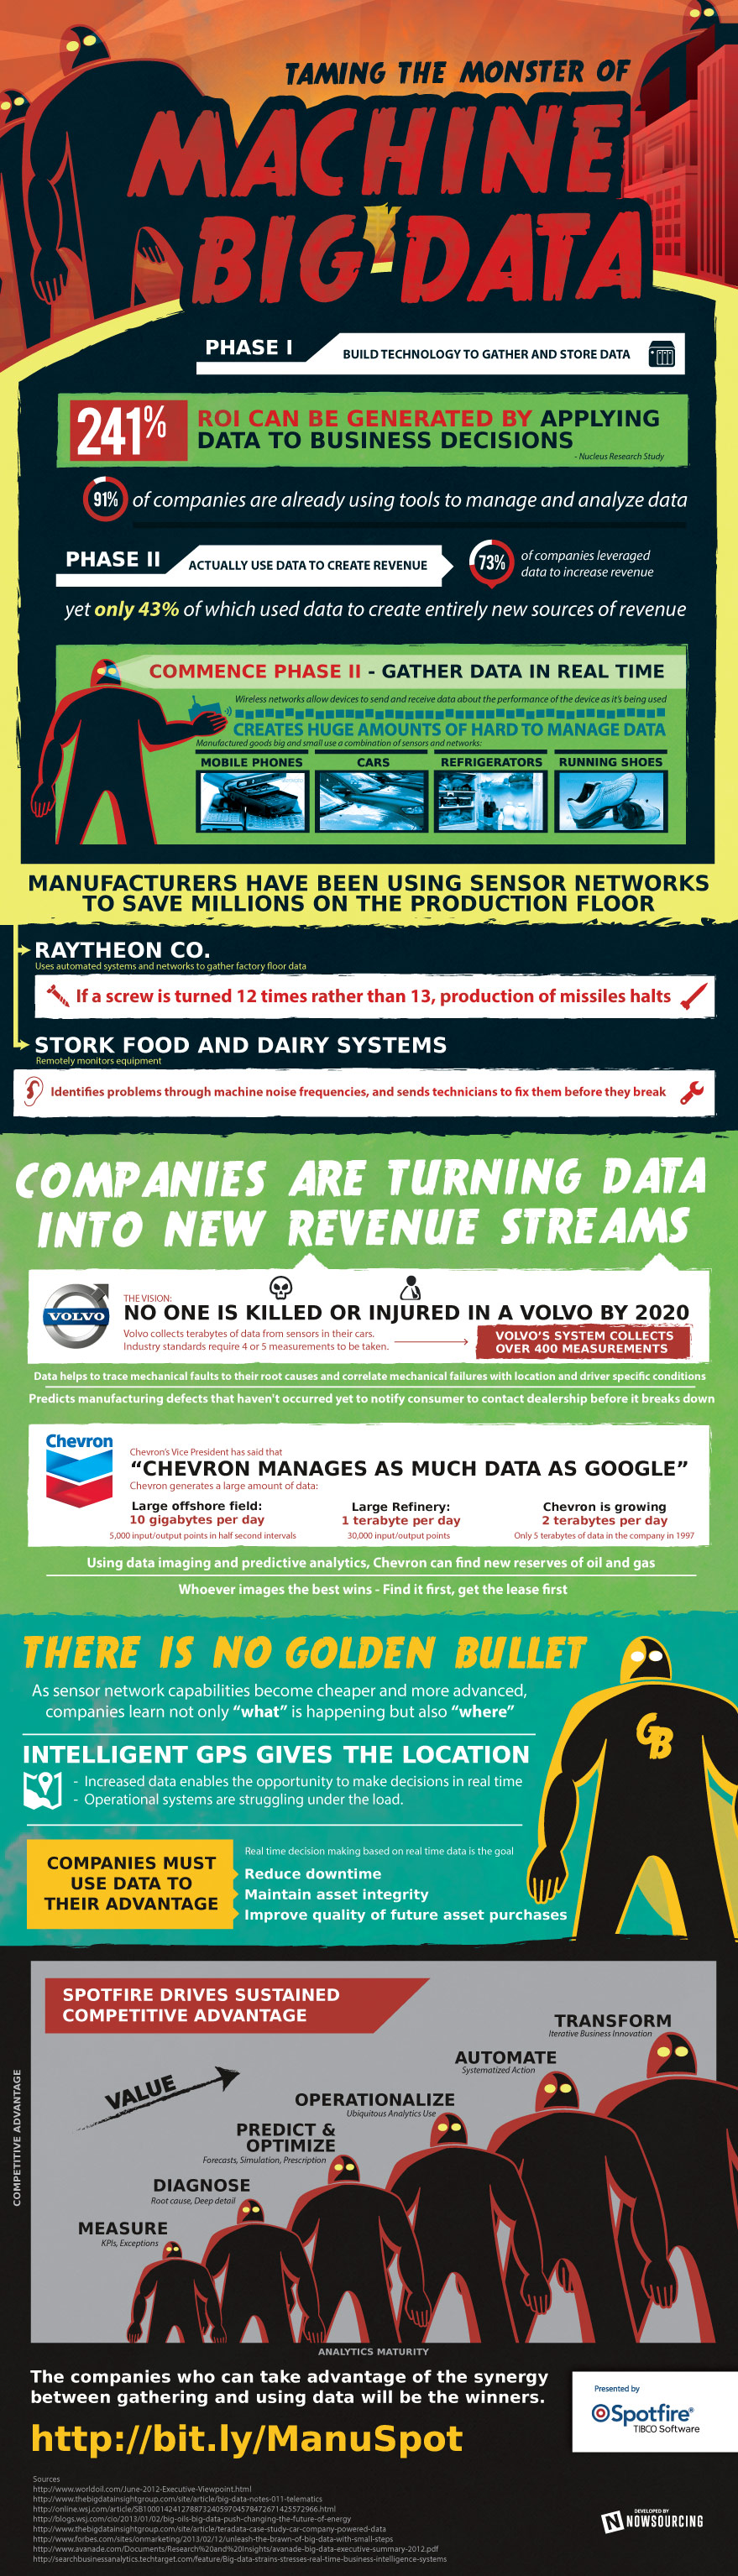 Taming the Big Data Monster [Infographic] image Tibco Manufacturing Big Data.v.5c